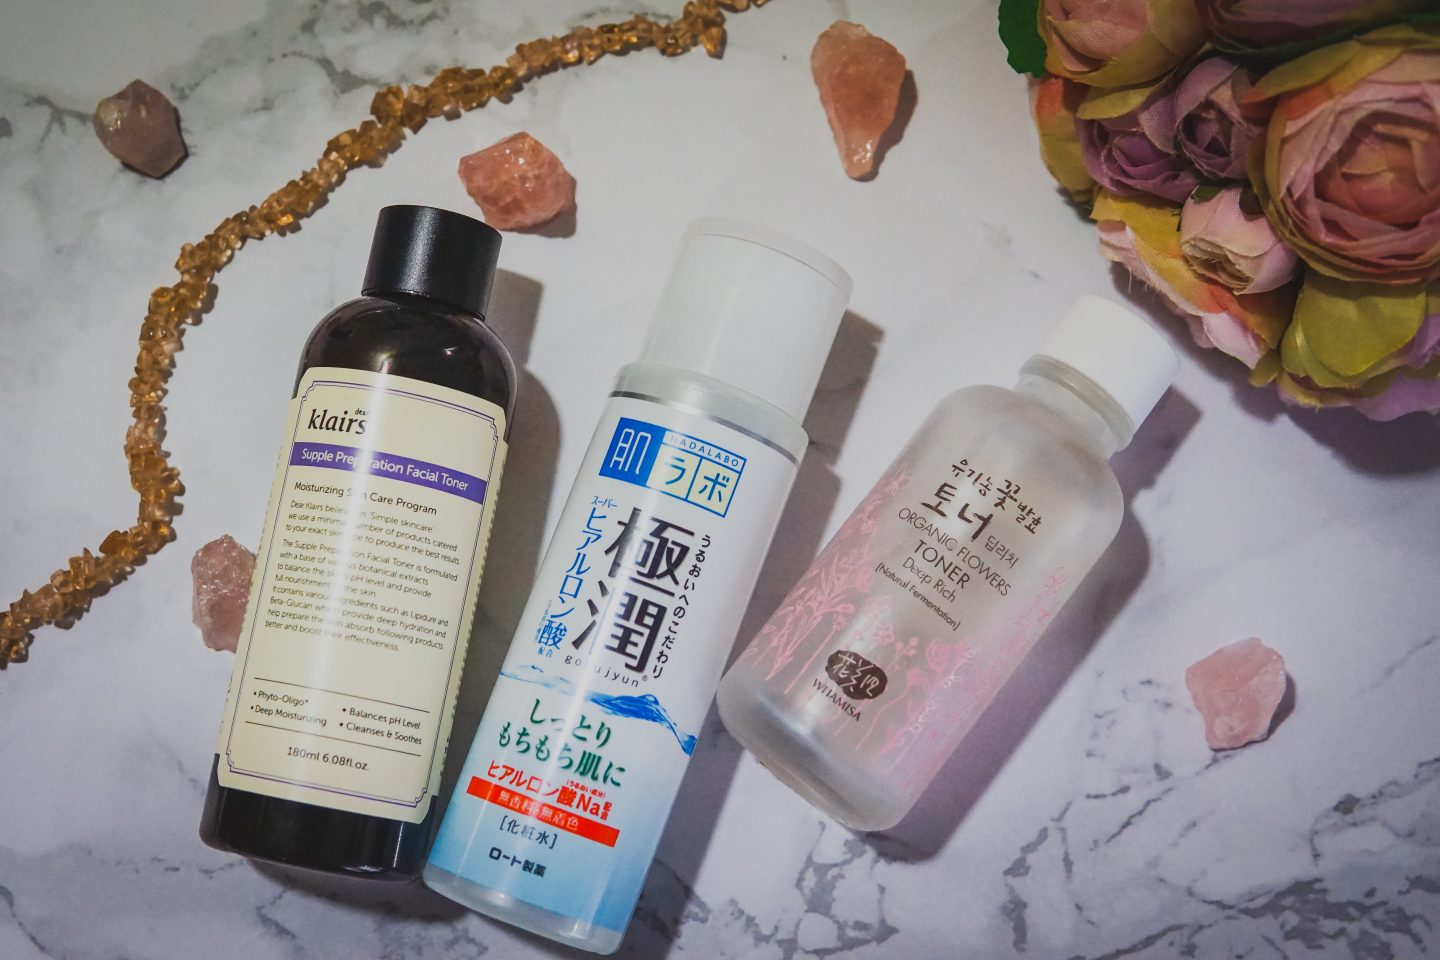 Minimalist Travel Skincare Hack: 7-Skin Hydrating Toner Method